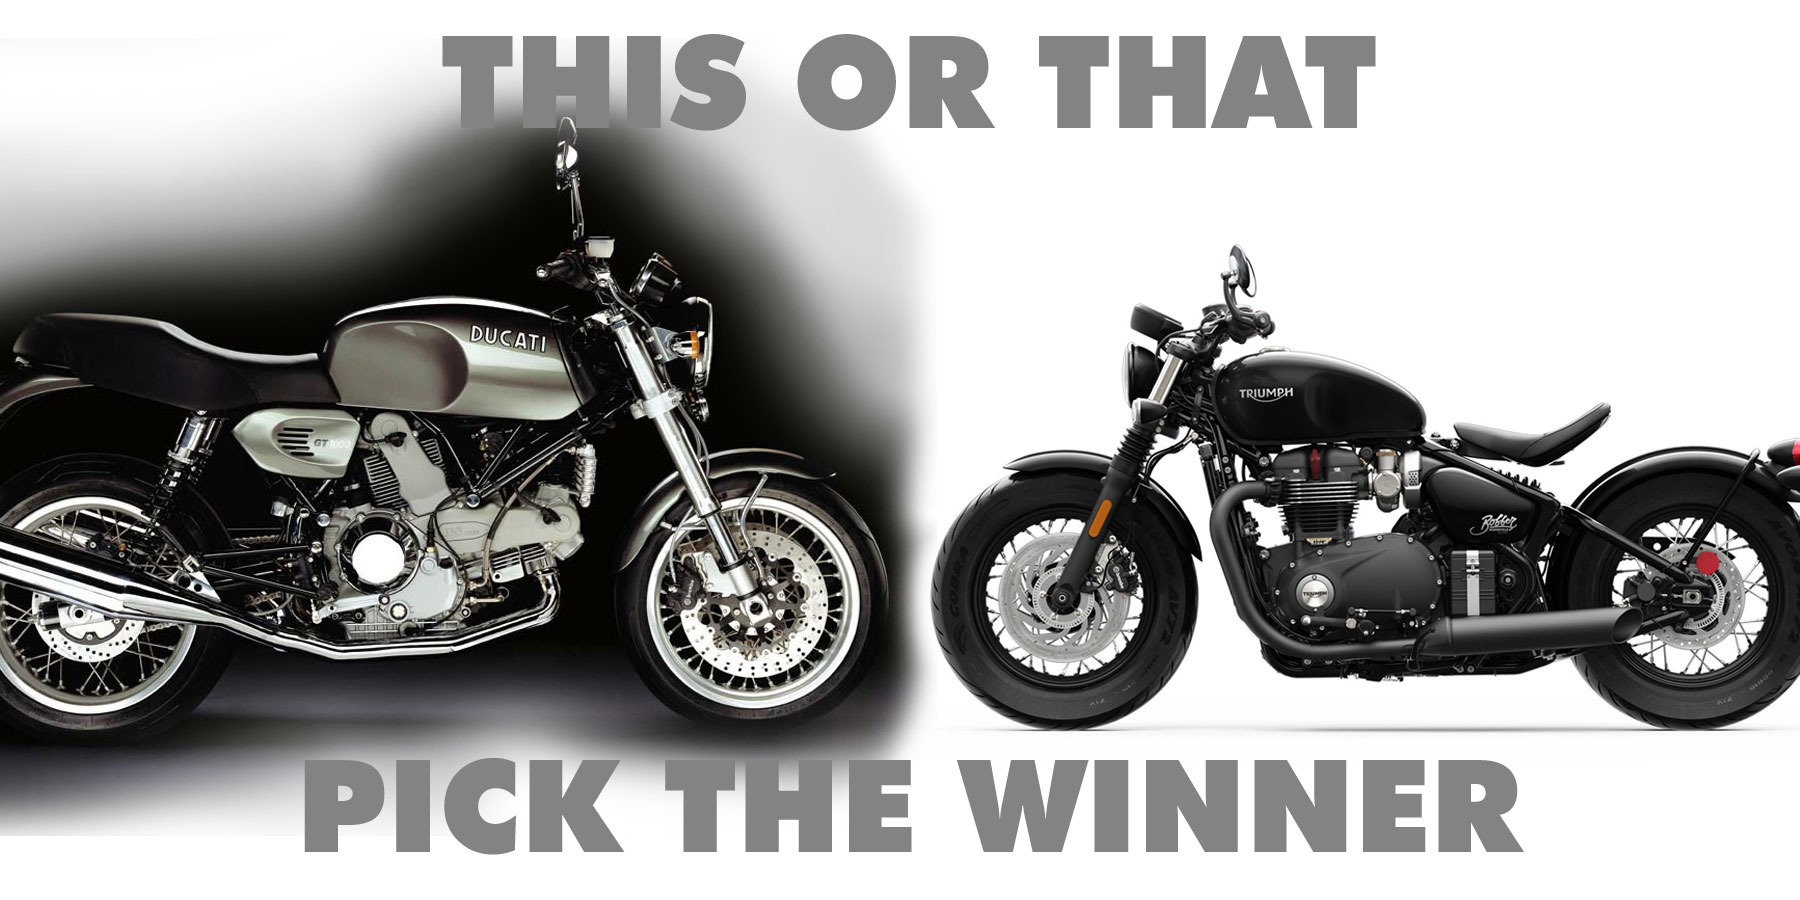 371 This Or That 2006 Ducati Gt1000 Winner Vs 2018 Triumph